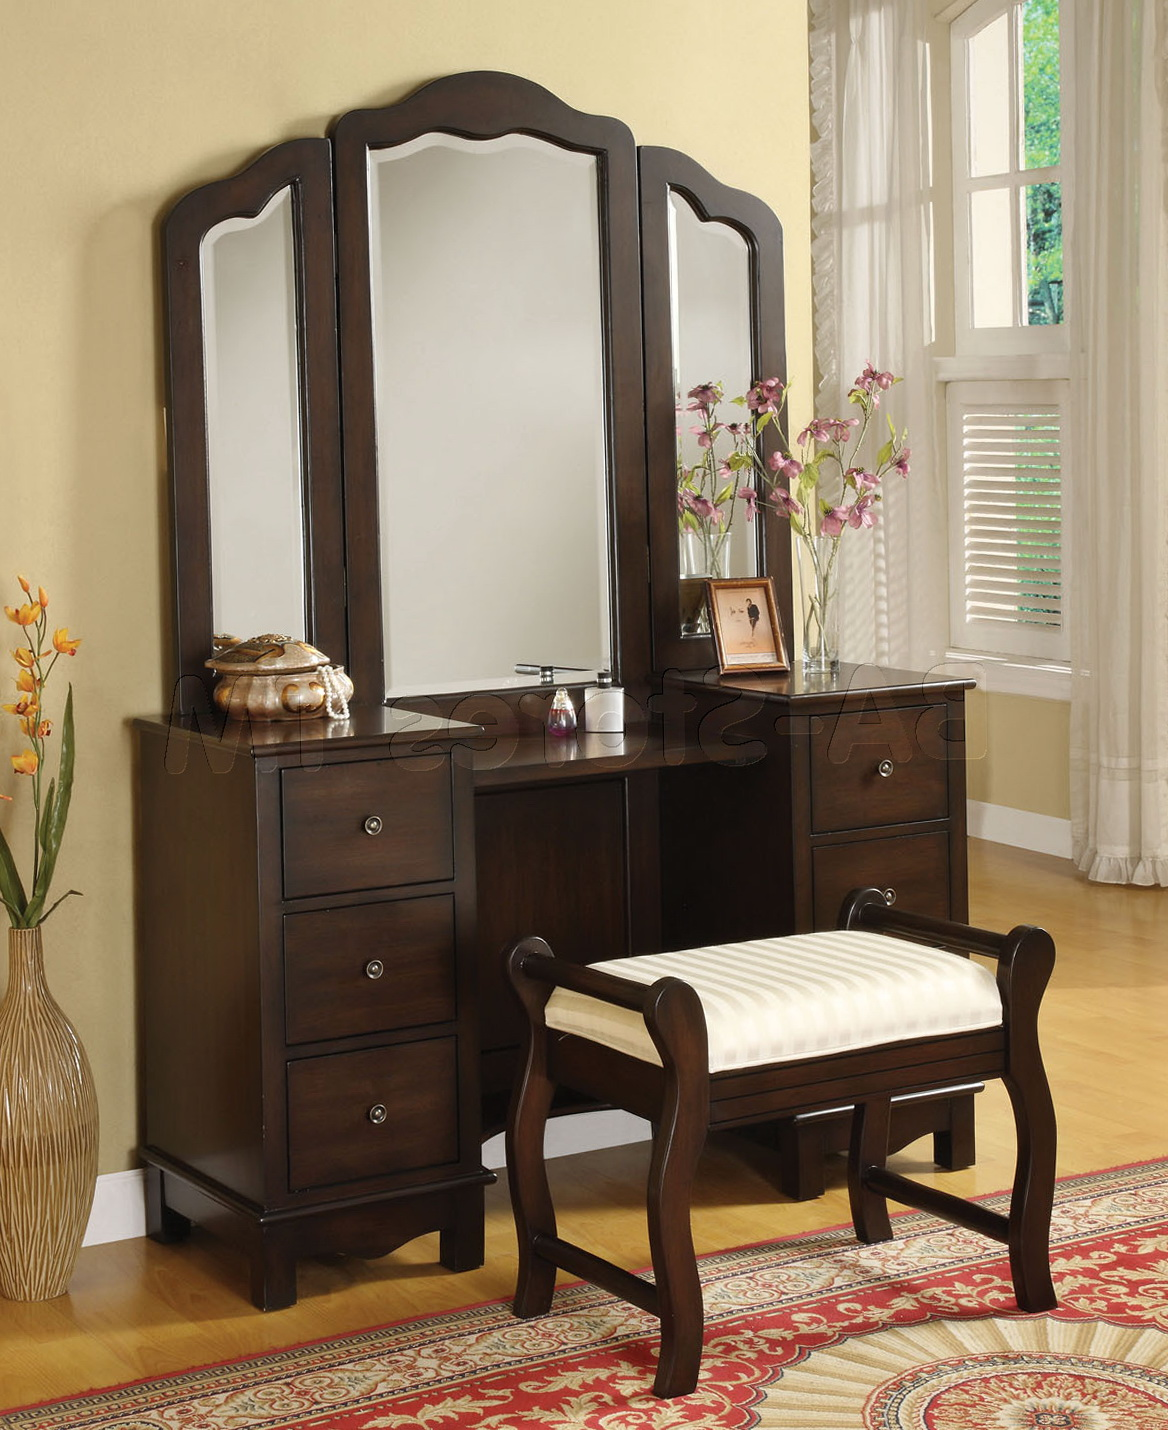 Black Bedroom Vanity With Tri Fold Mirror